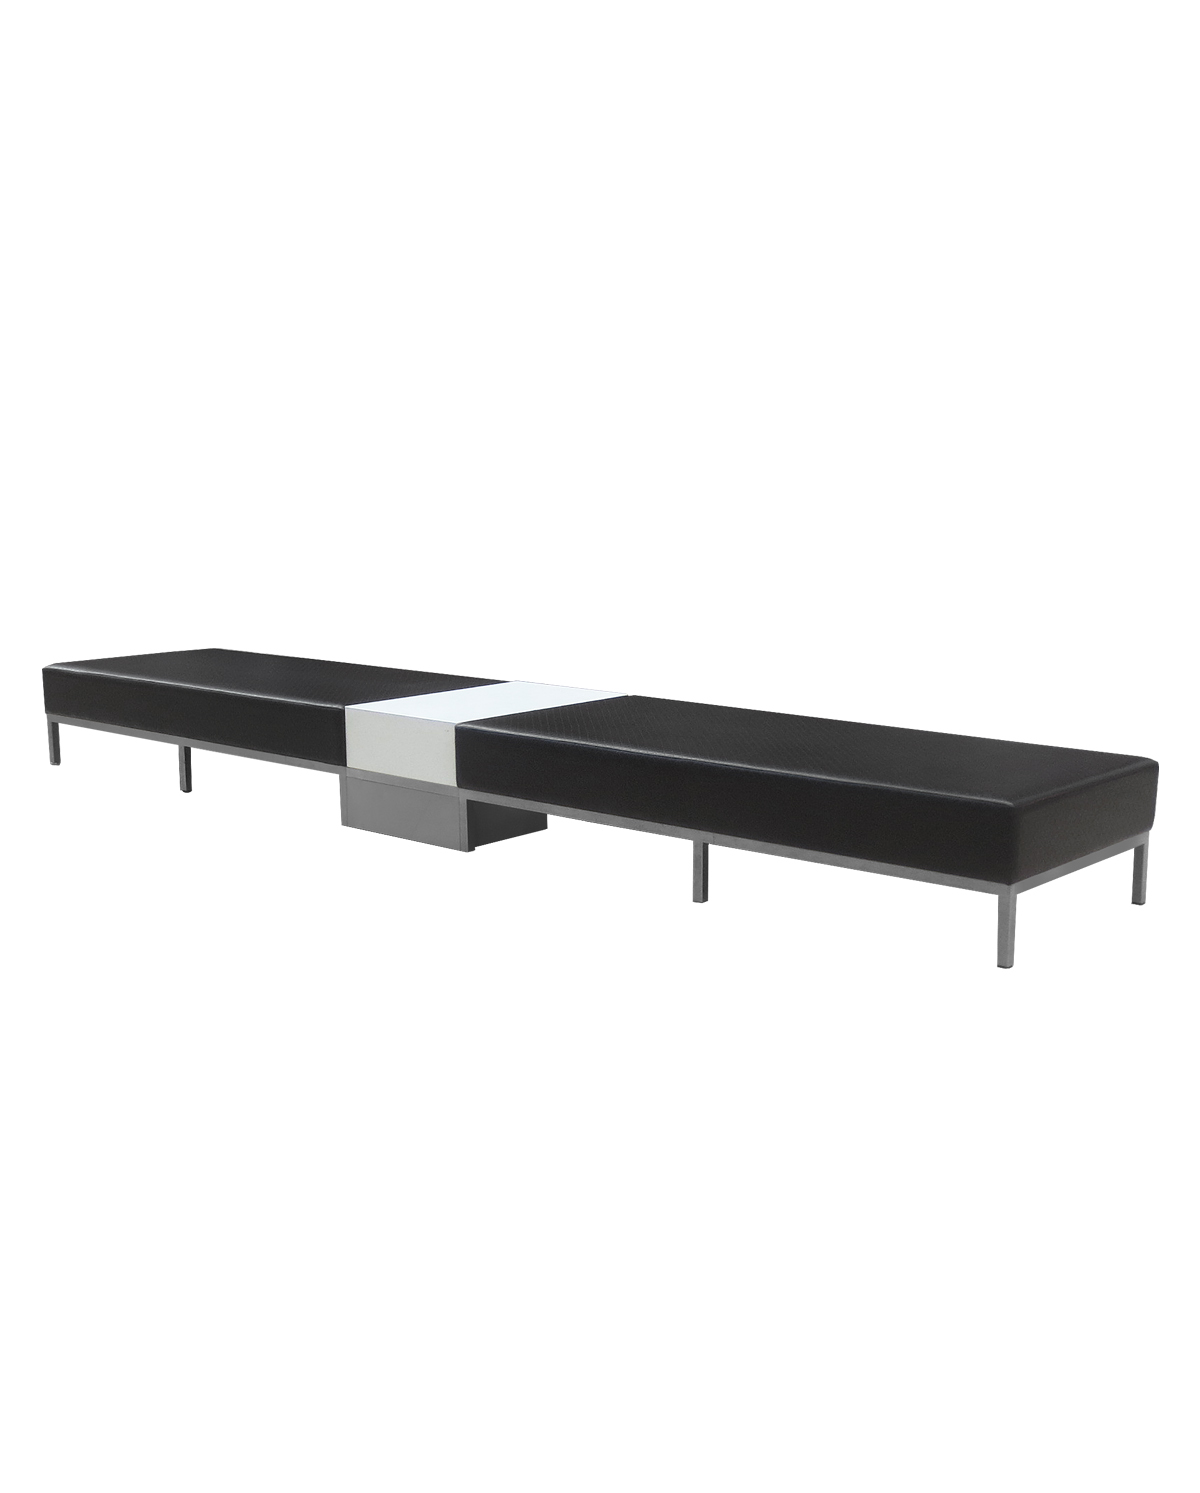 Custom Cf Sherway Bench Isa International